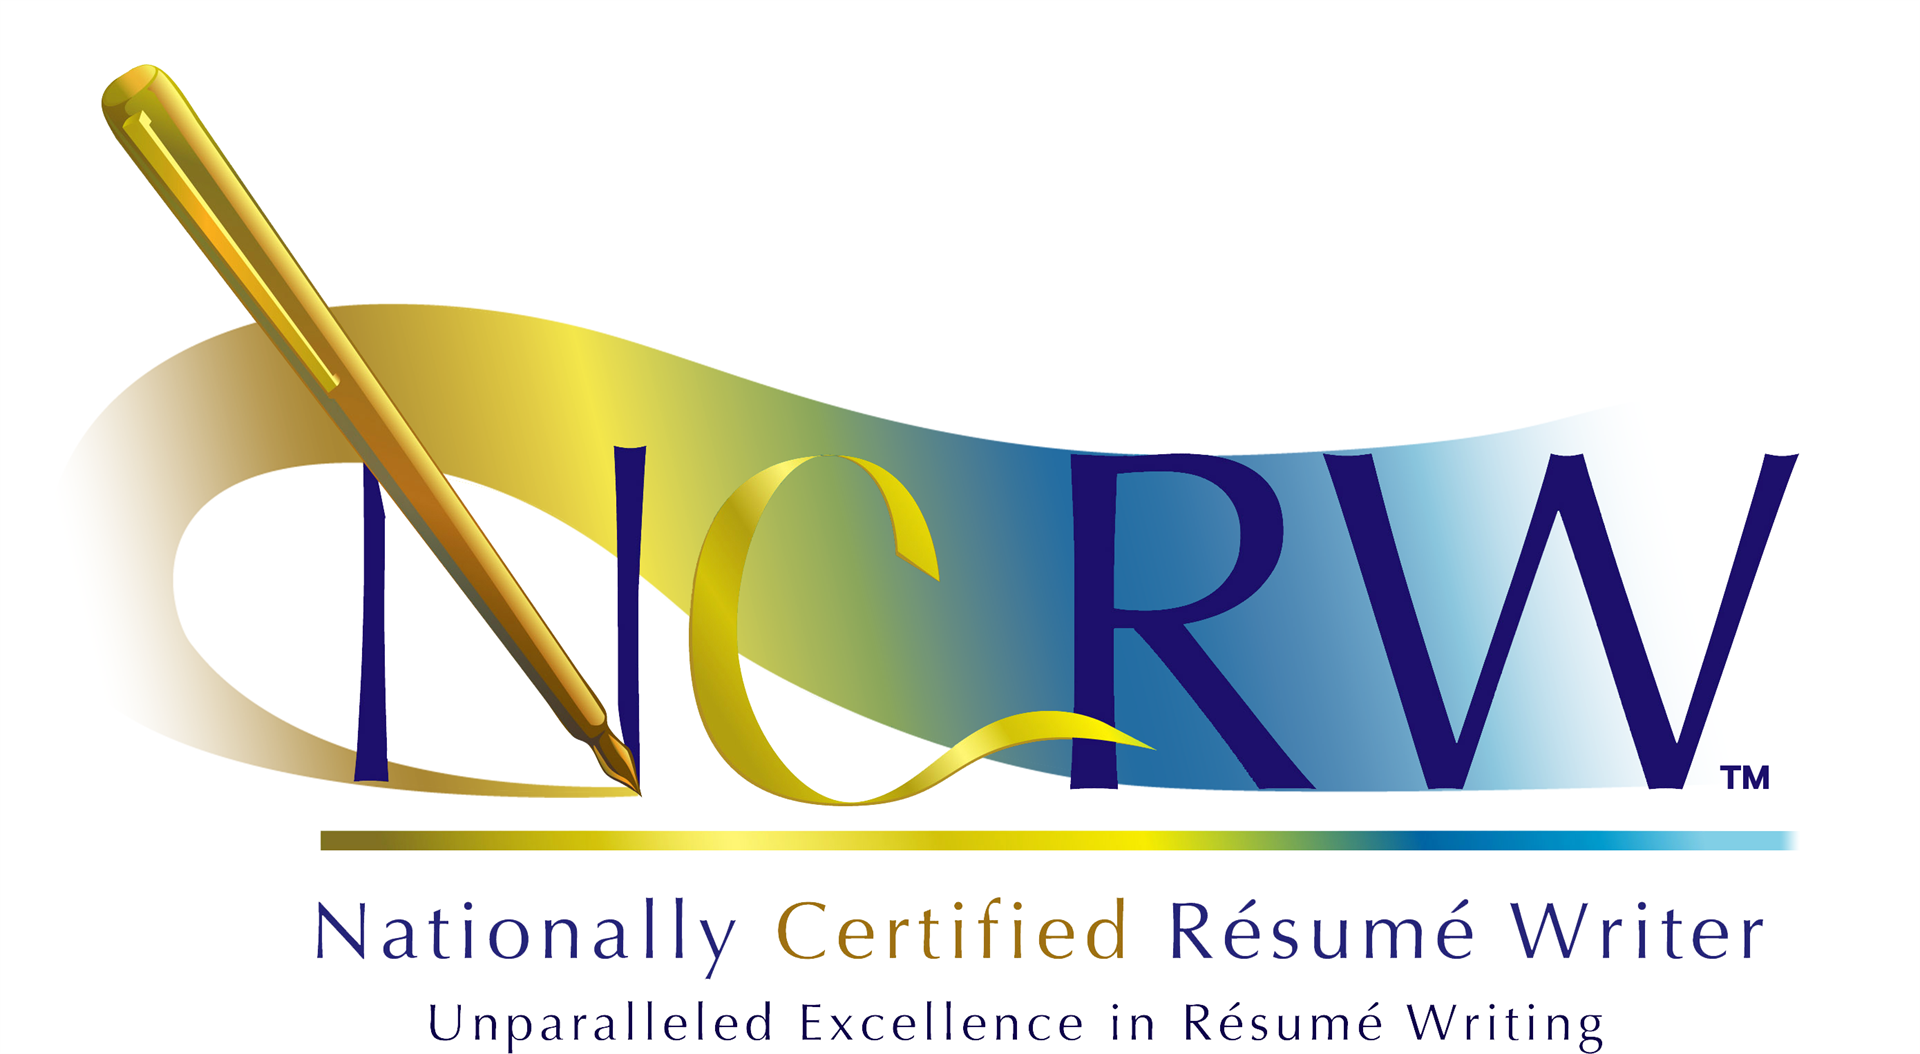 NCRW - Nationally Certified Resume Writer - Unparalleled Excellence in Resume Writing